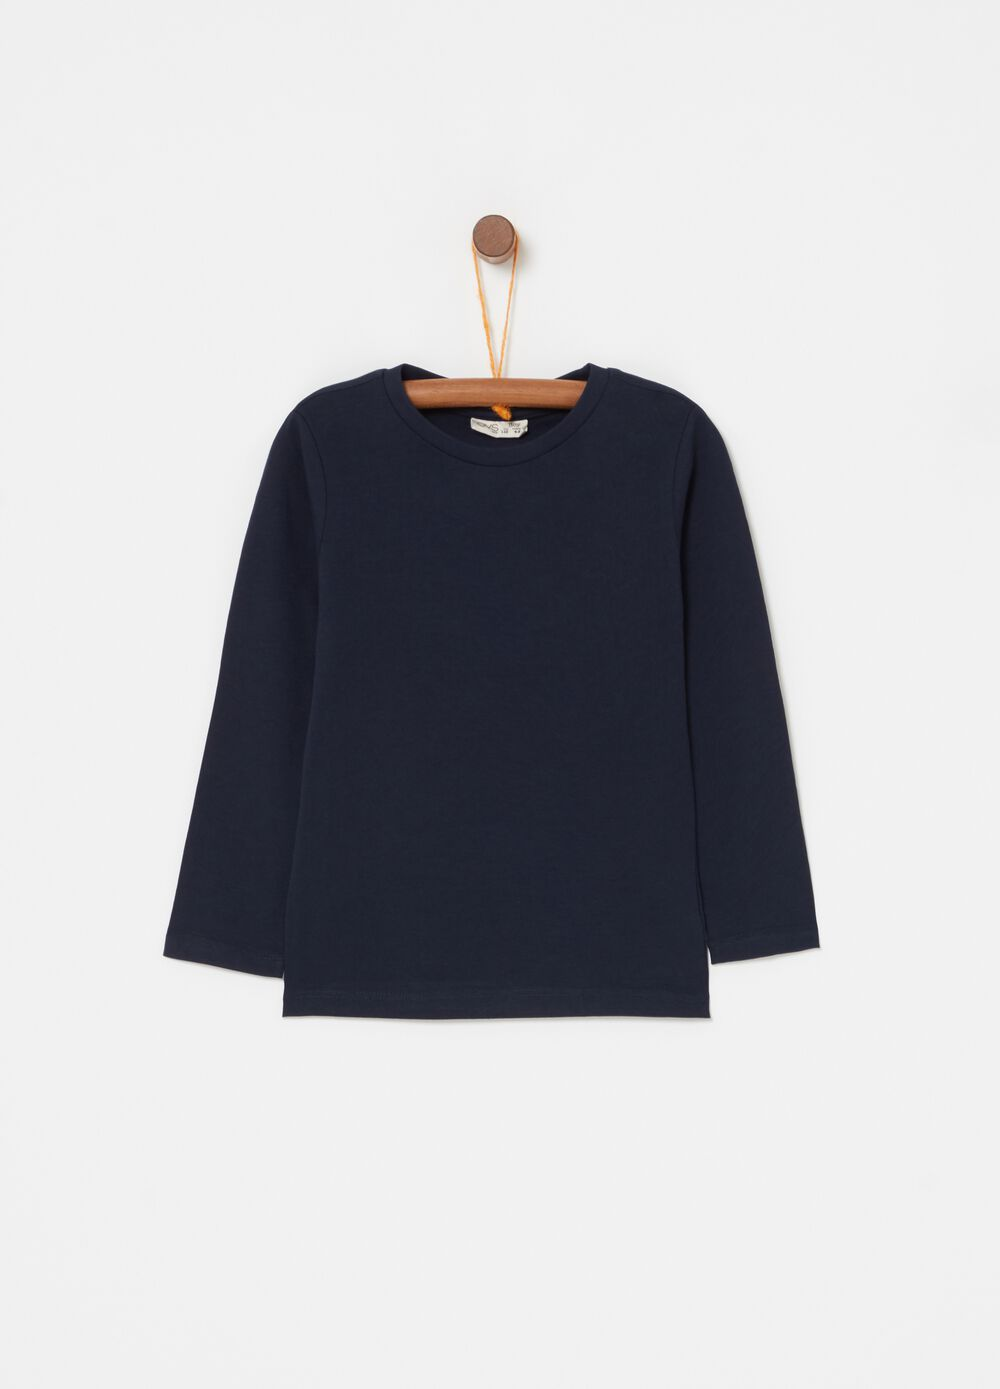 100% biocotton T-shirt with long sleeves